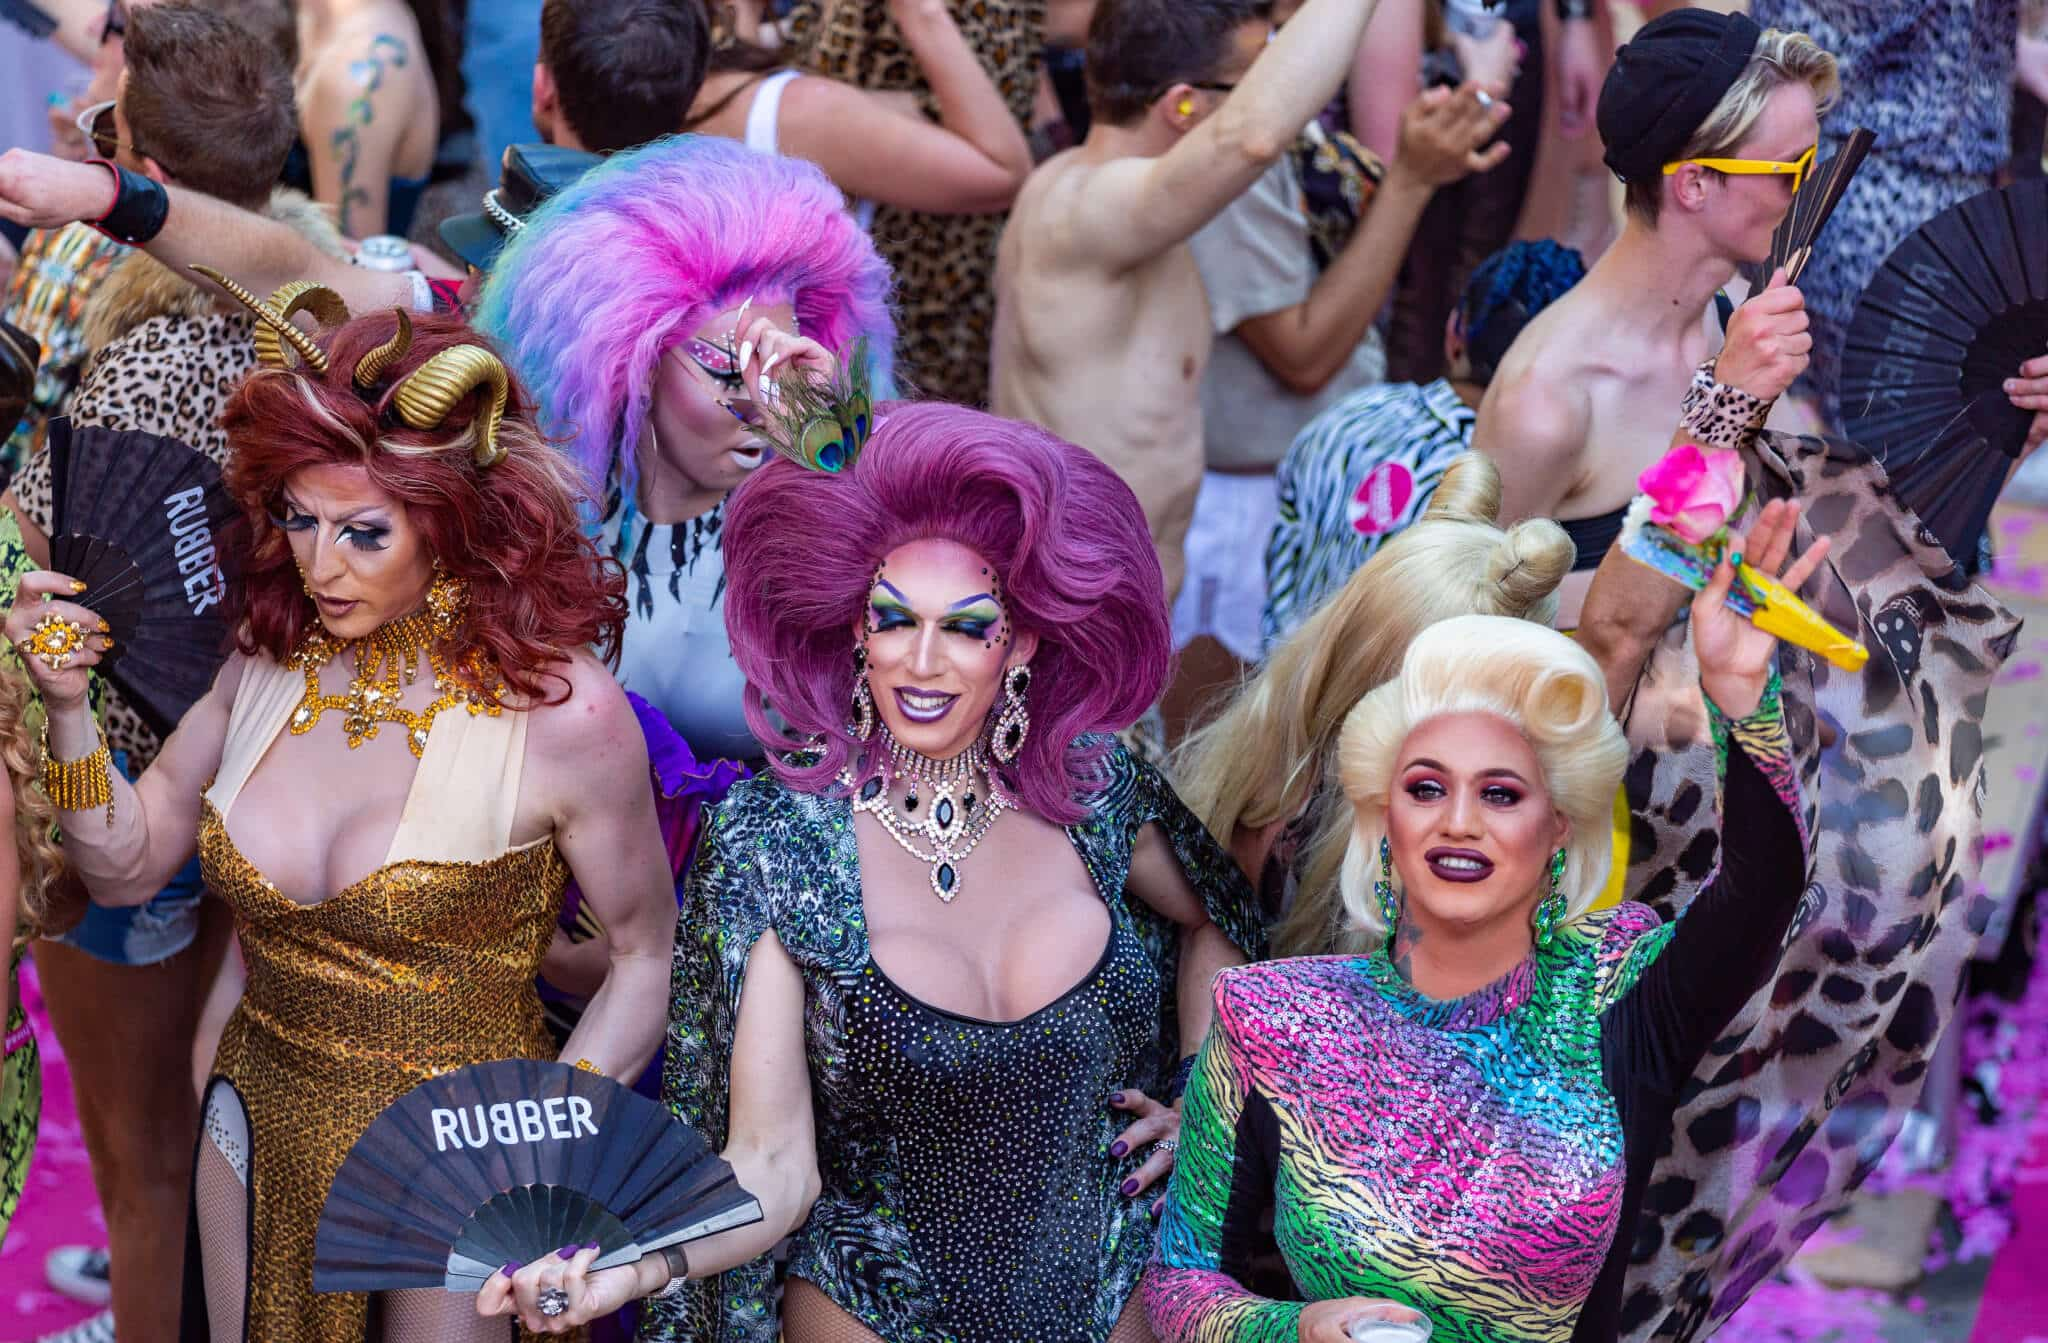 Drag queens in Pride parade